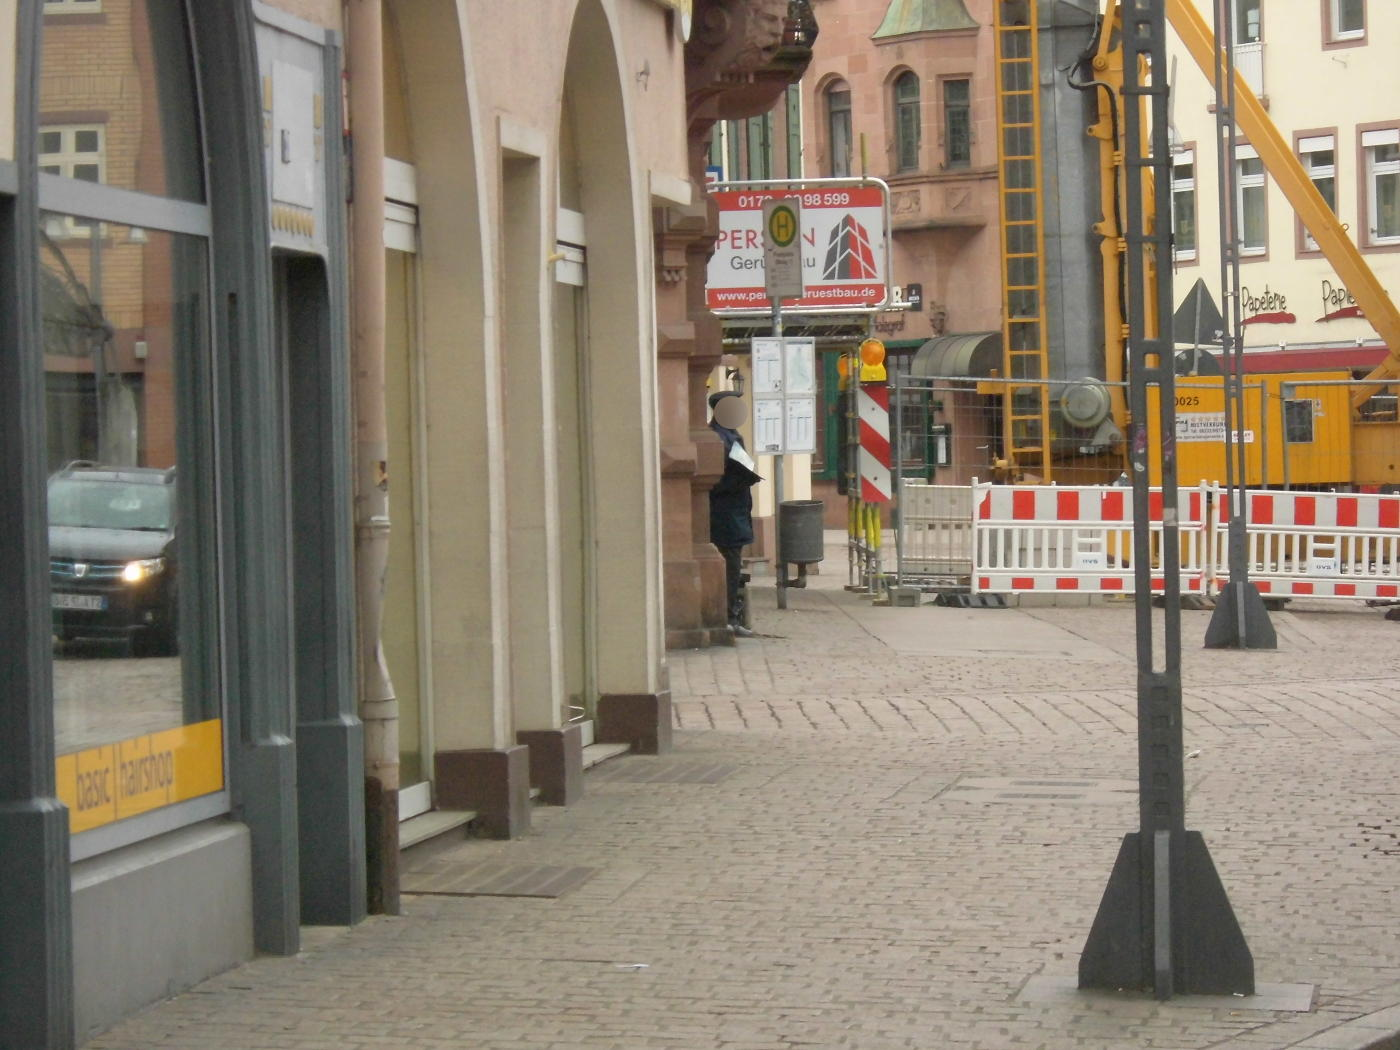 Only one advertiser for the revealed sons of God in Speyer